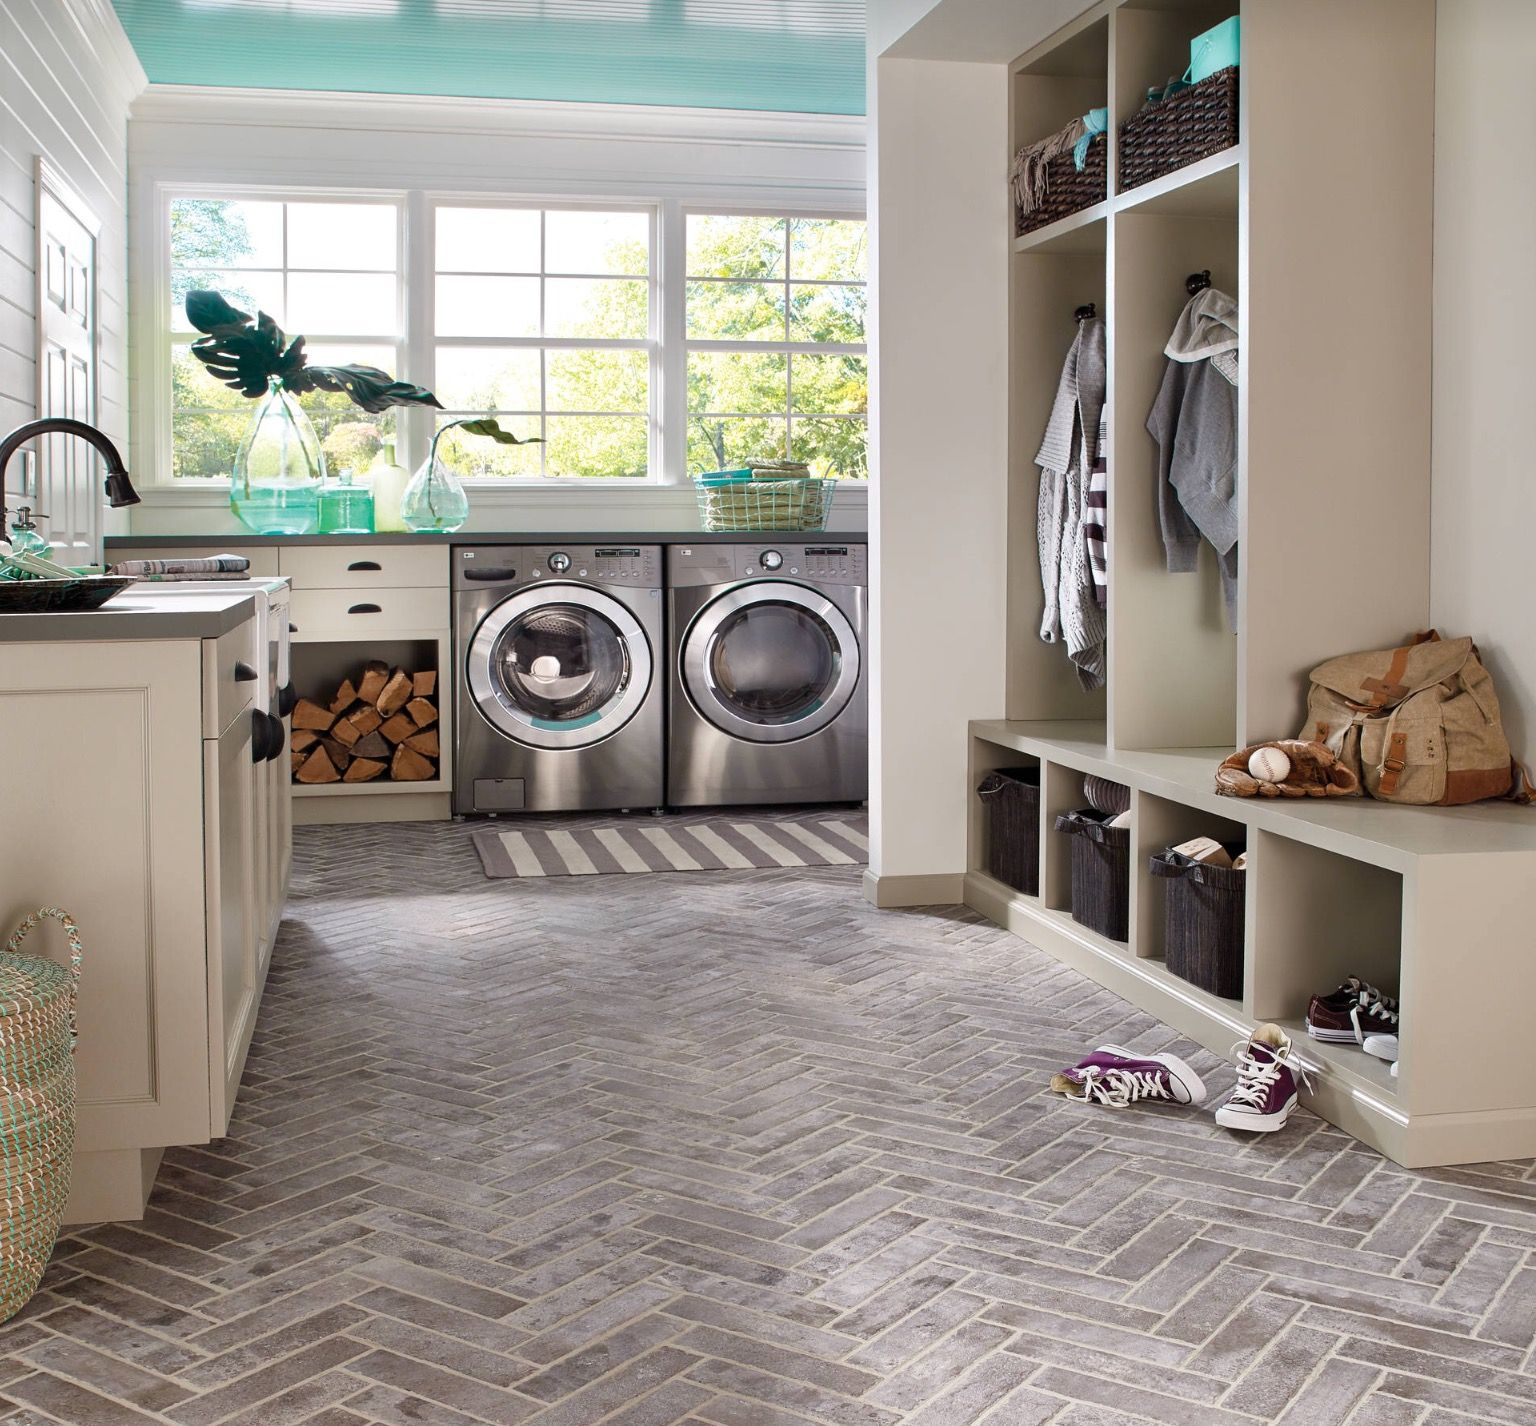 Pin On Home Mud And Laundry Rooms